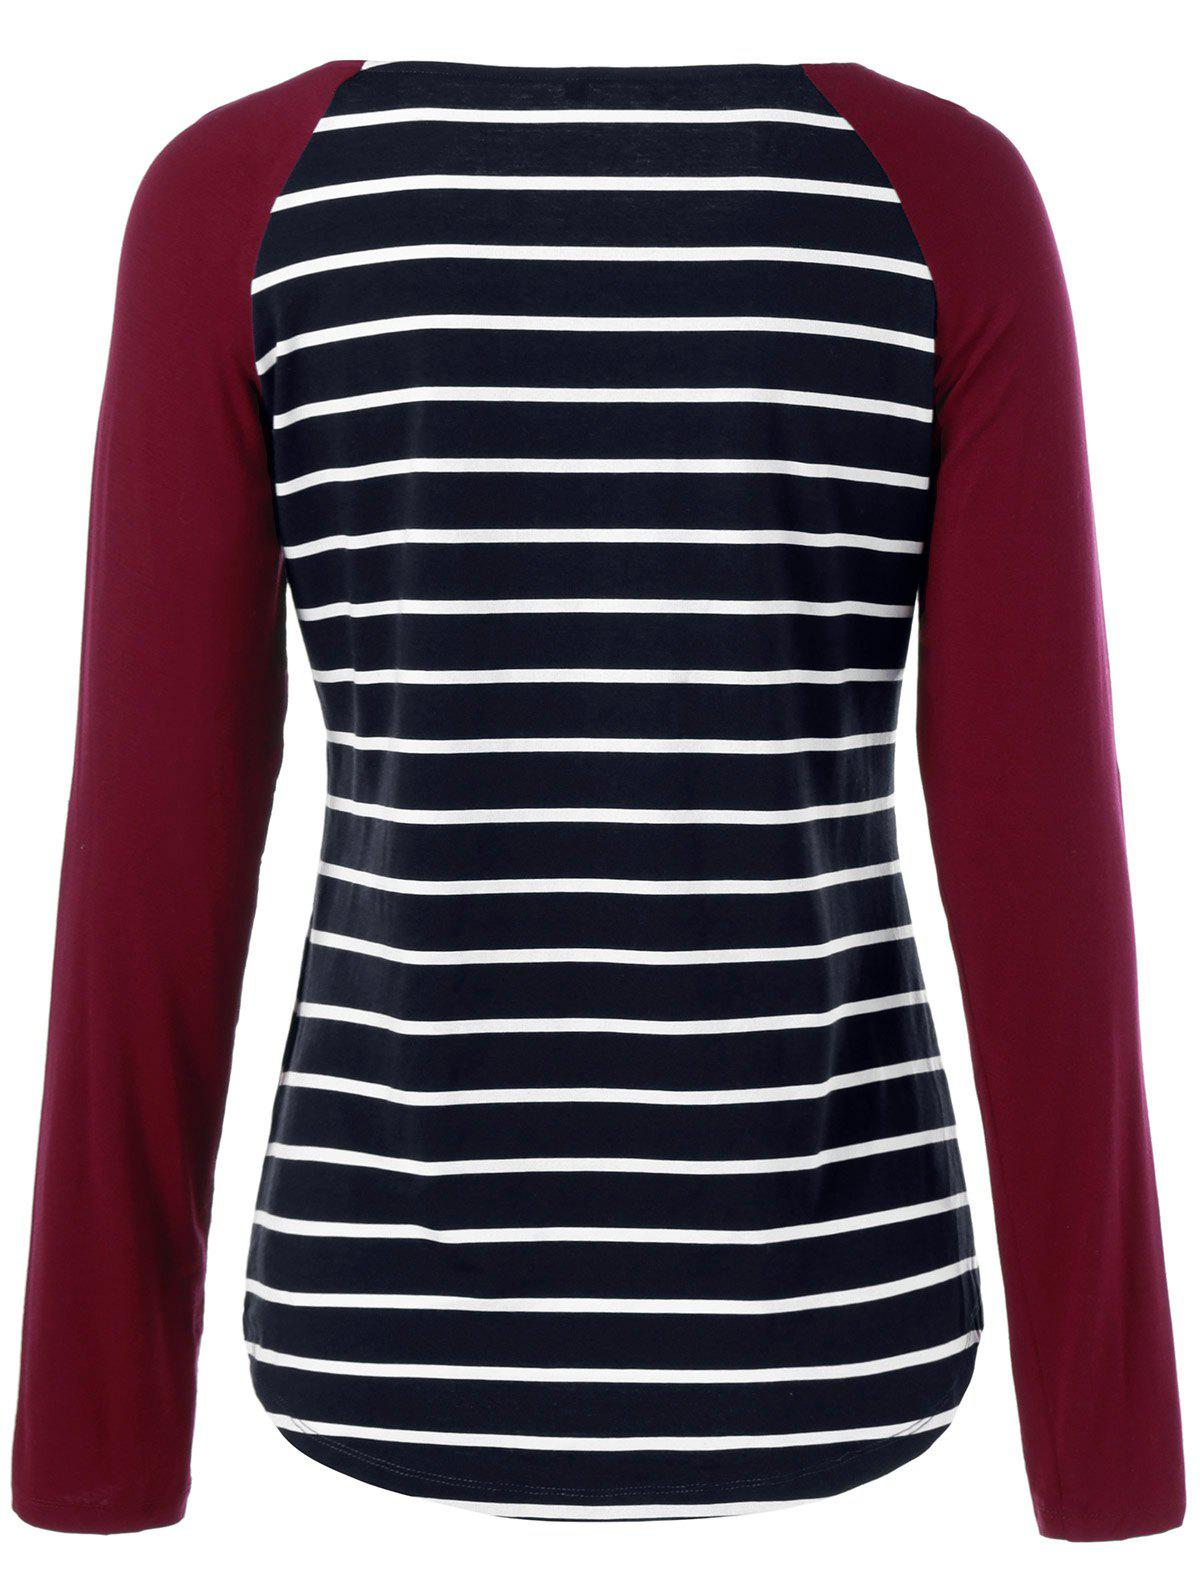 Raglan Sleeve Striped Comfy T-Shirt - STRIPE XL